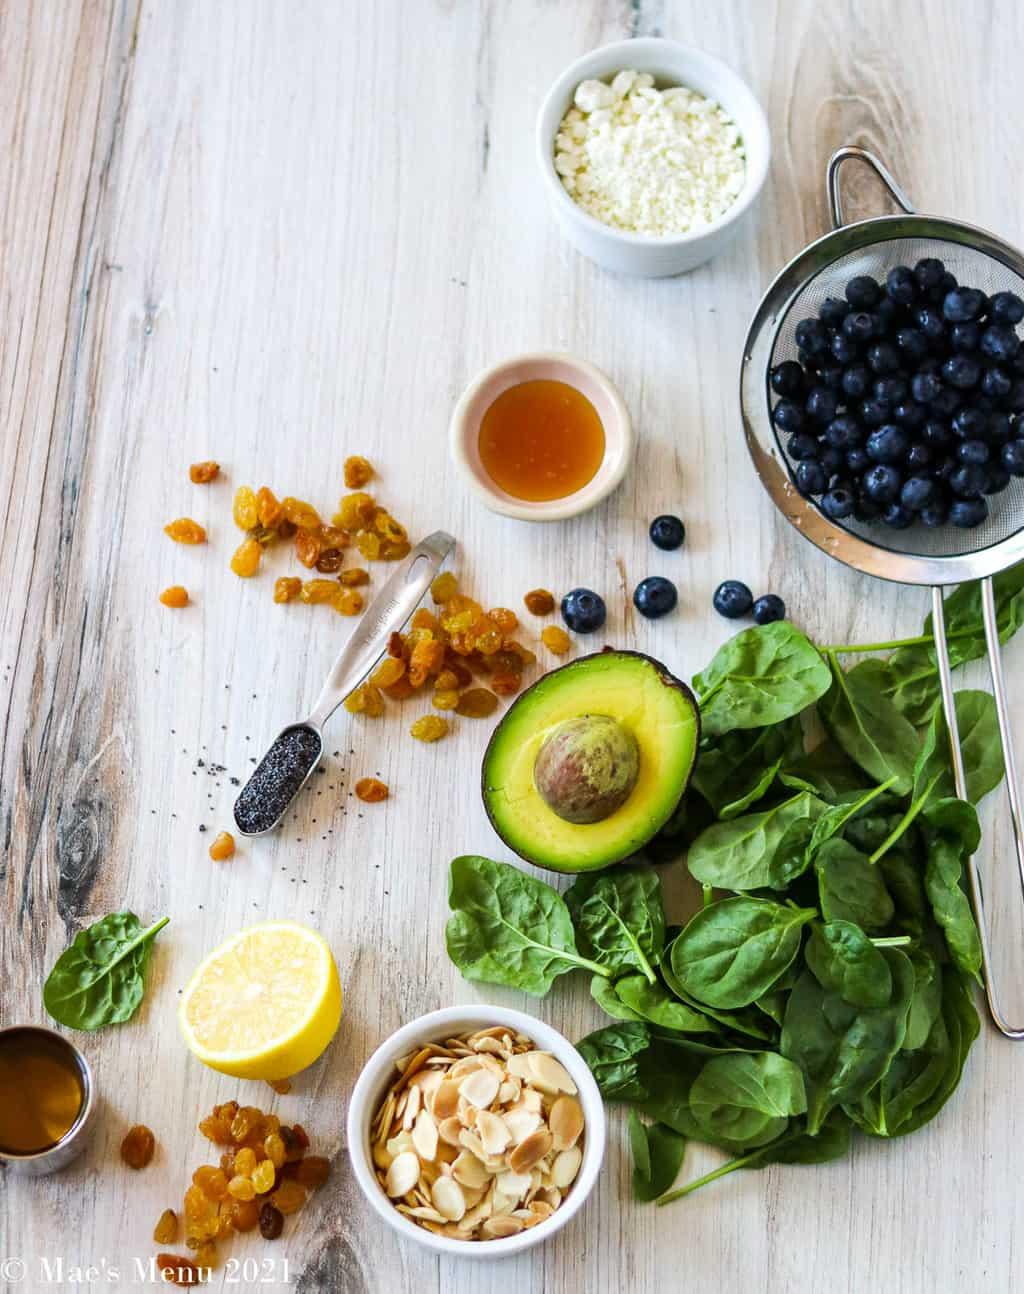 All of the ingredients for this recipe: goat cheese, blueberries, avocado, spinach, golden raisins, honey, almonds, poppy seeds, lemon, and olive oil